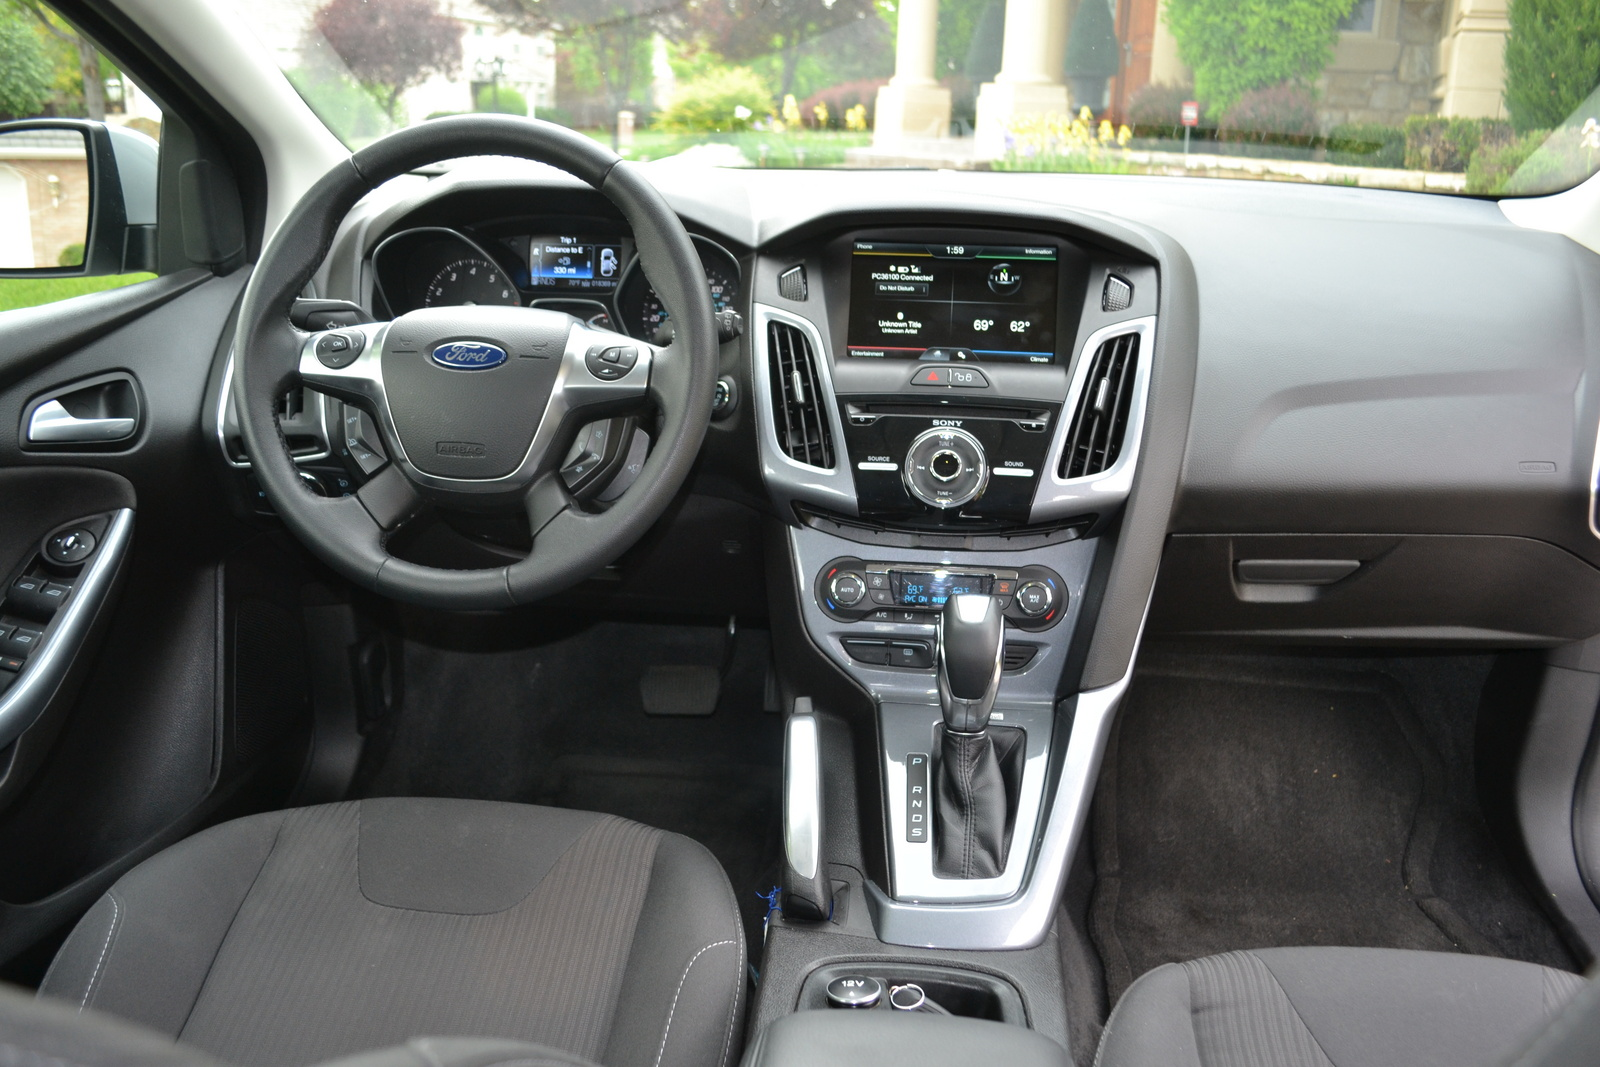 2012 ford focus hatchback review where gas mileage html autos weblog. Black Bedroom Furniture Sets. Home Design Ideas